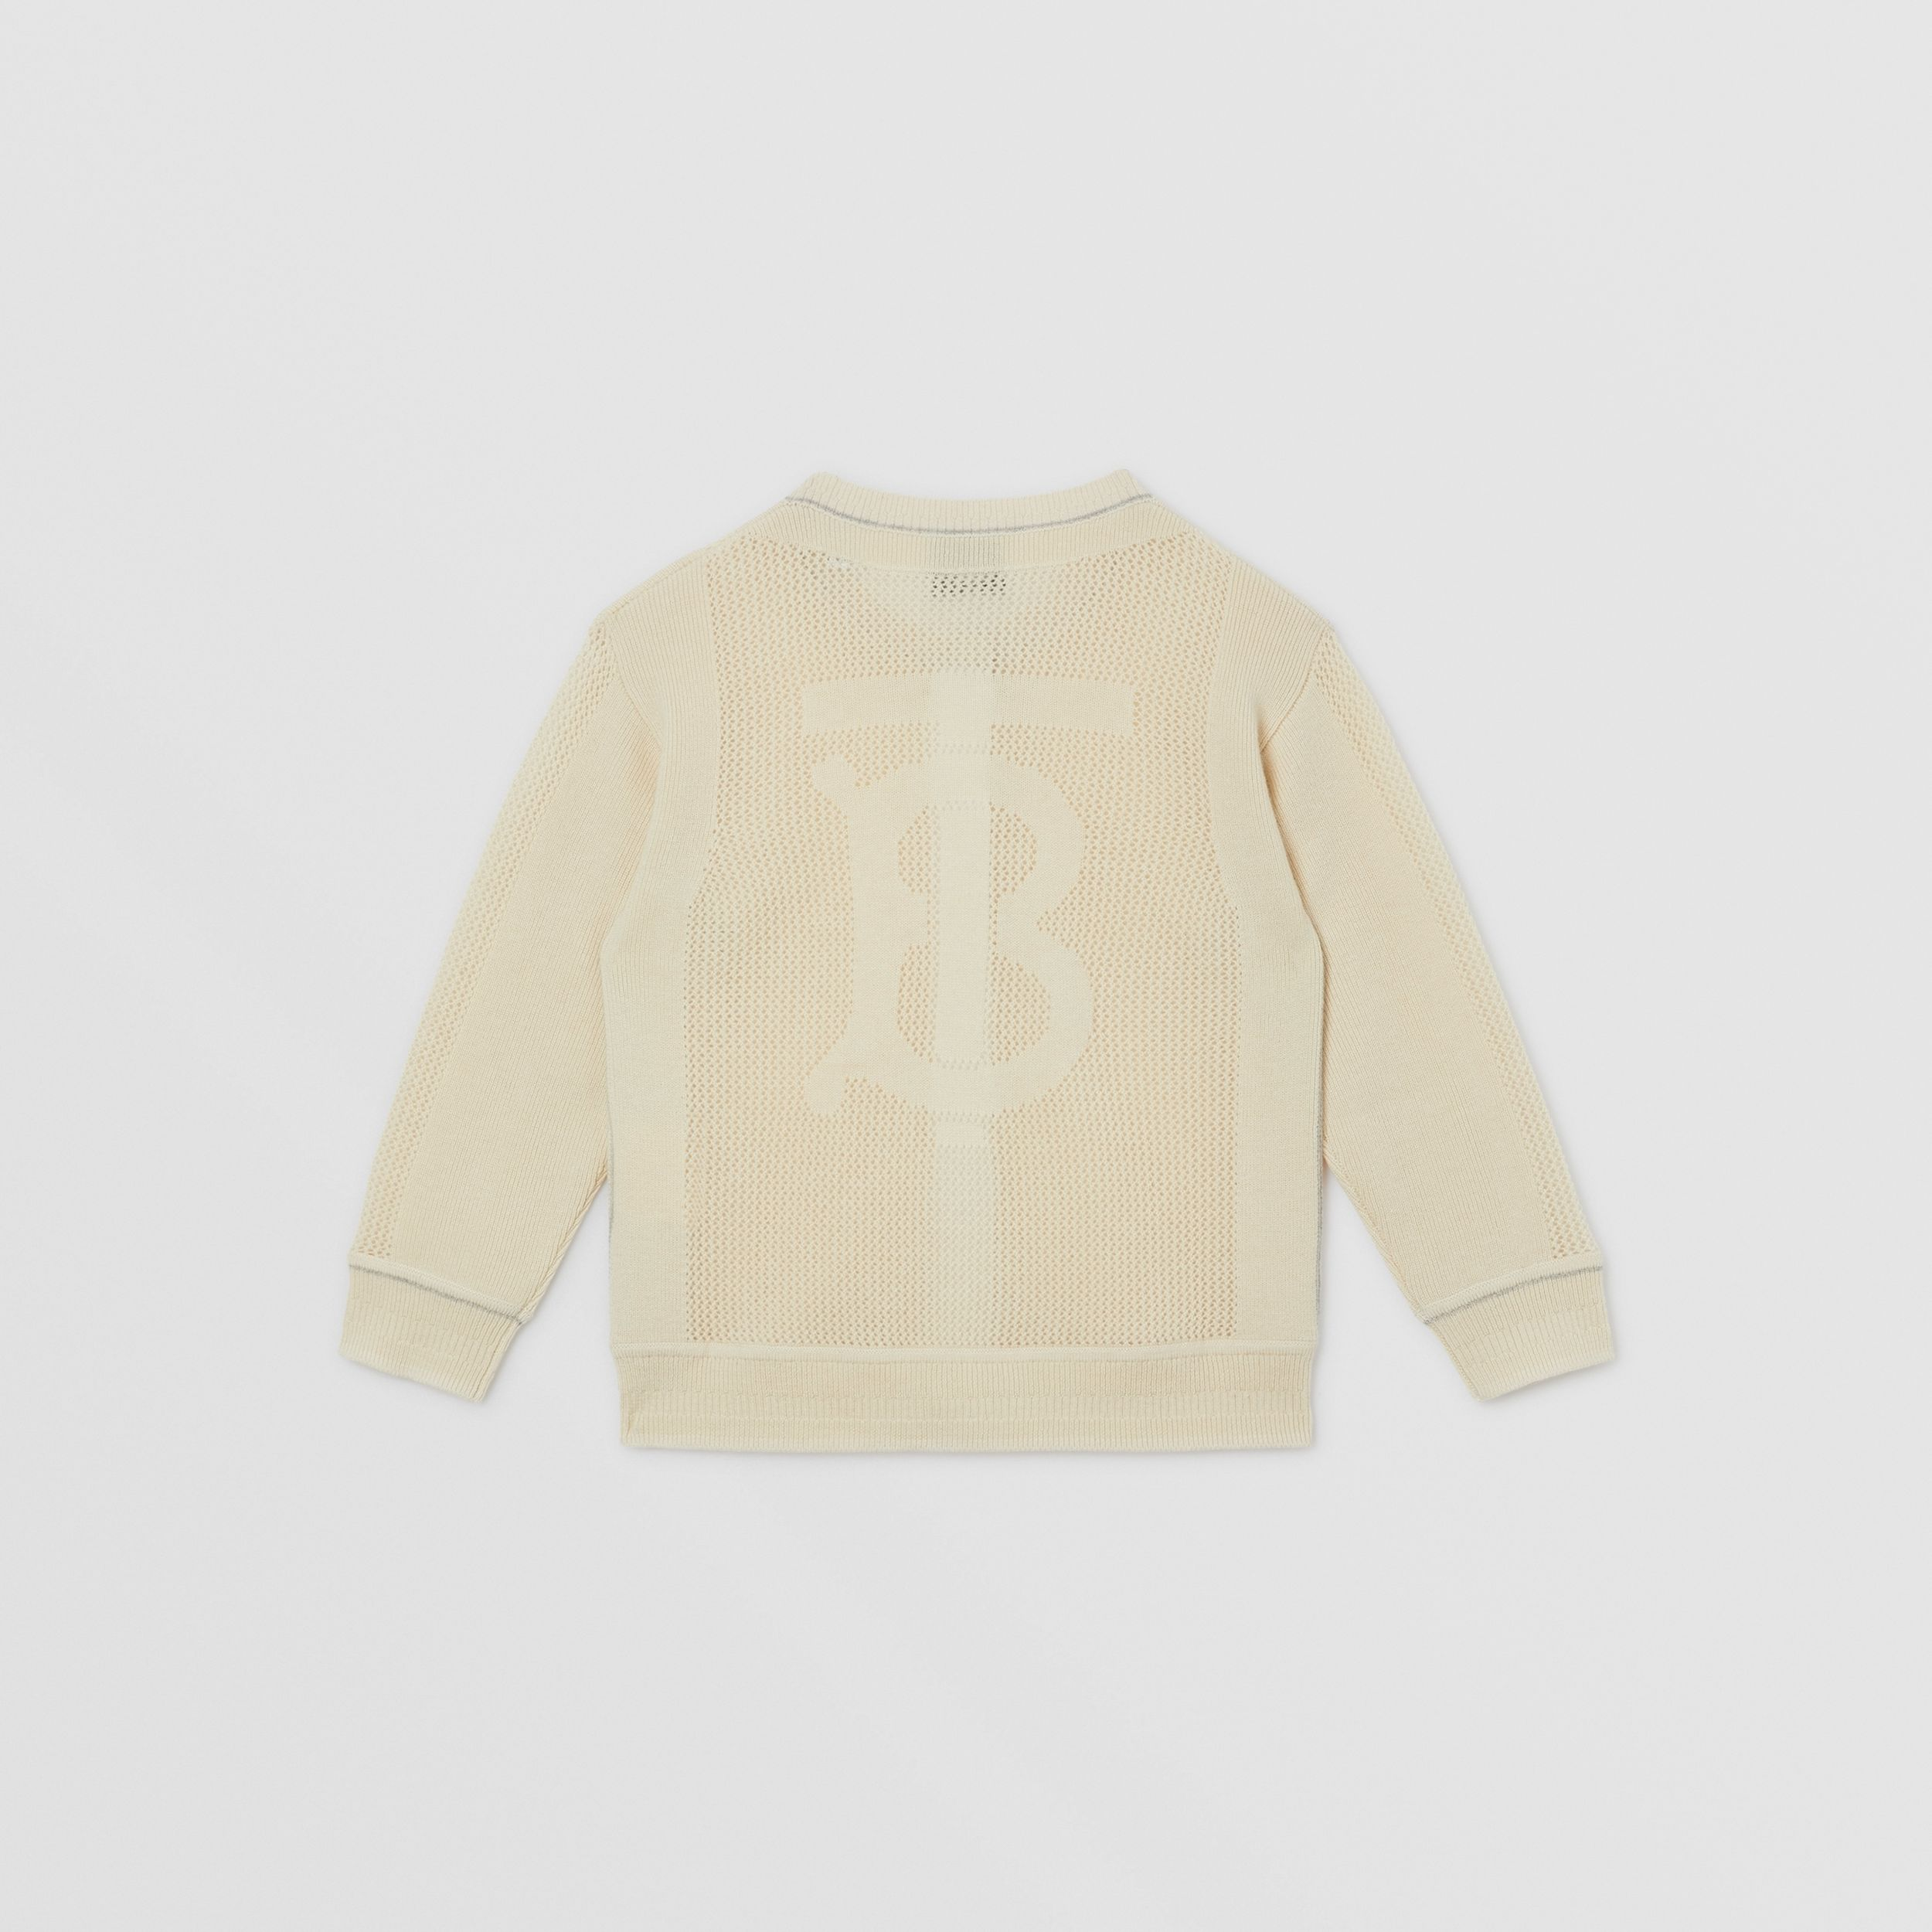 Monogram Motif Knitted Cashmere Cardigan in Ivory | Burberry - 3